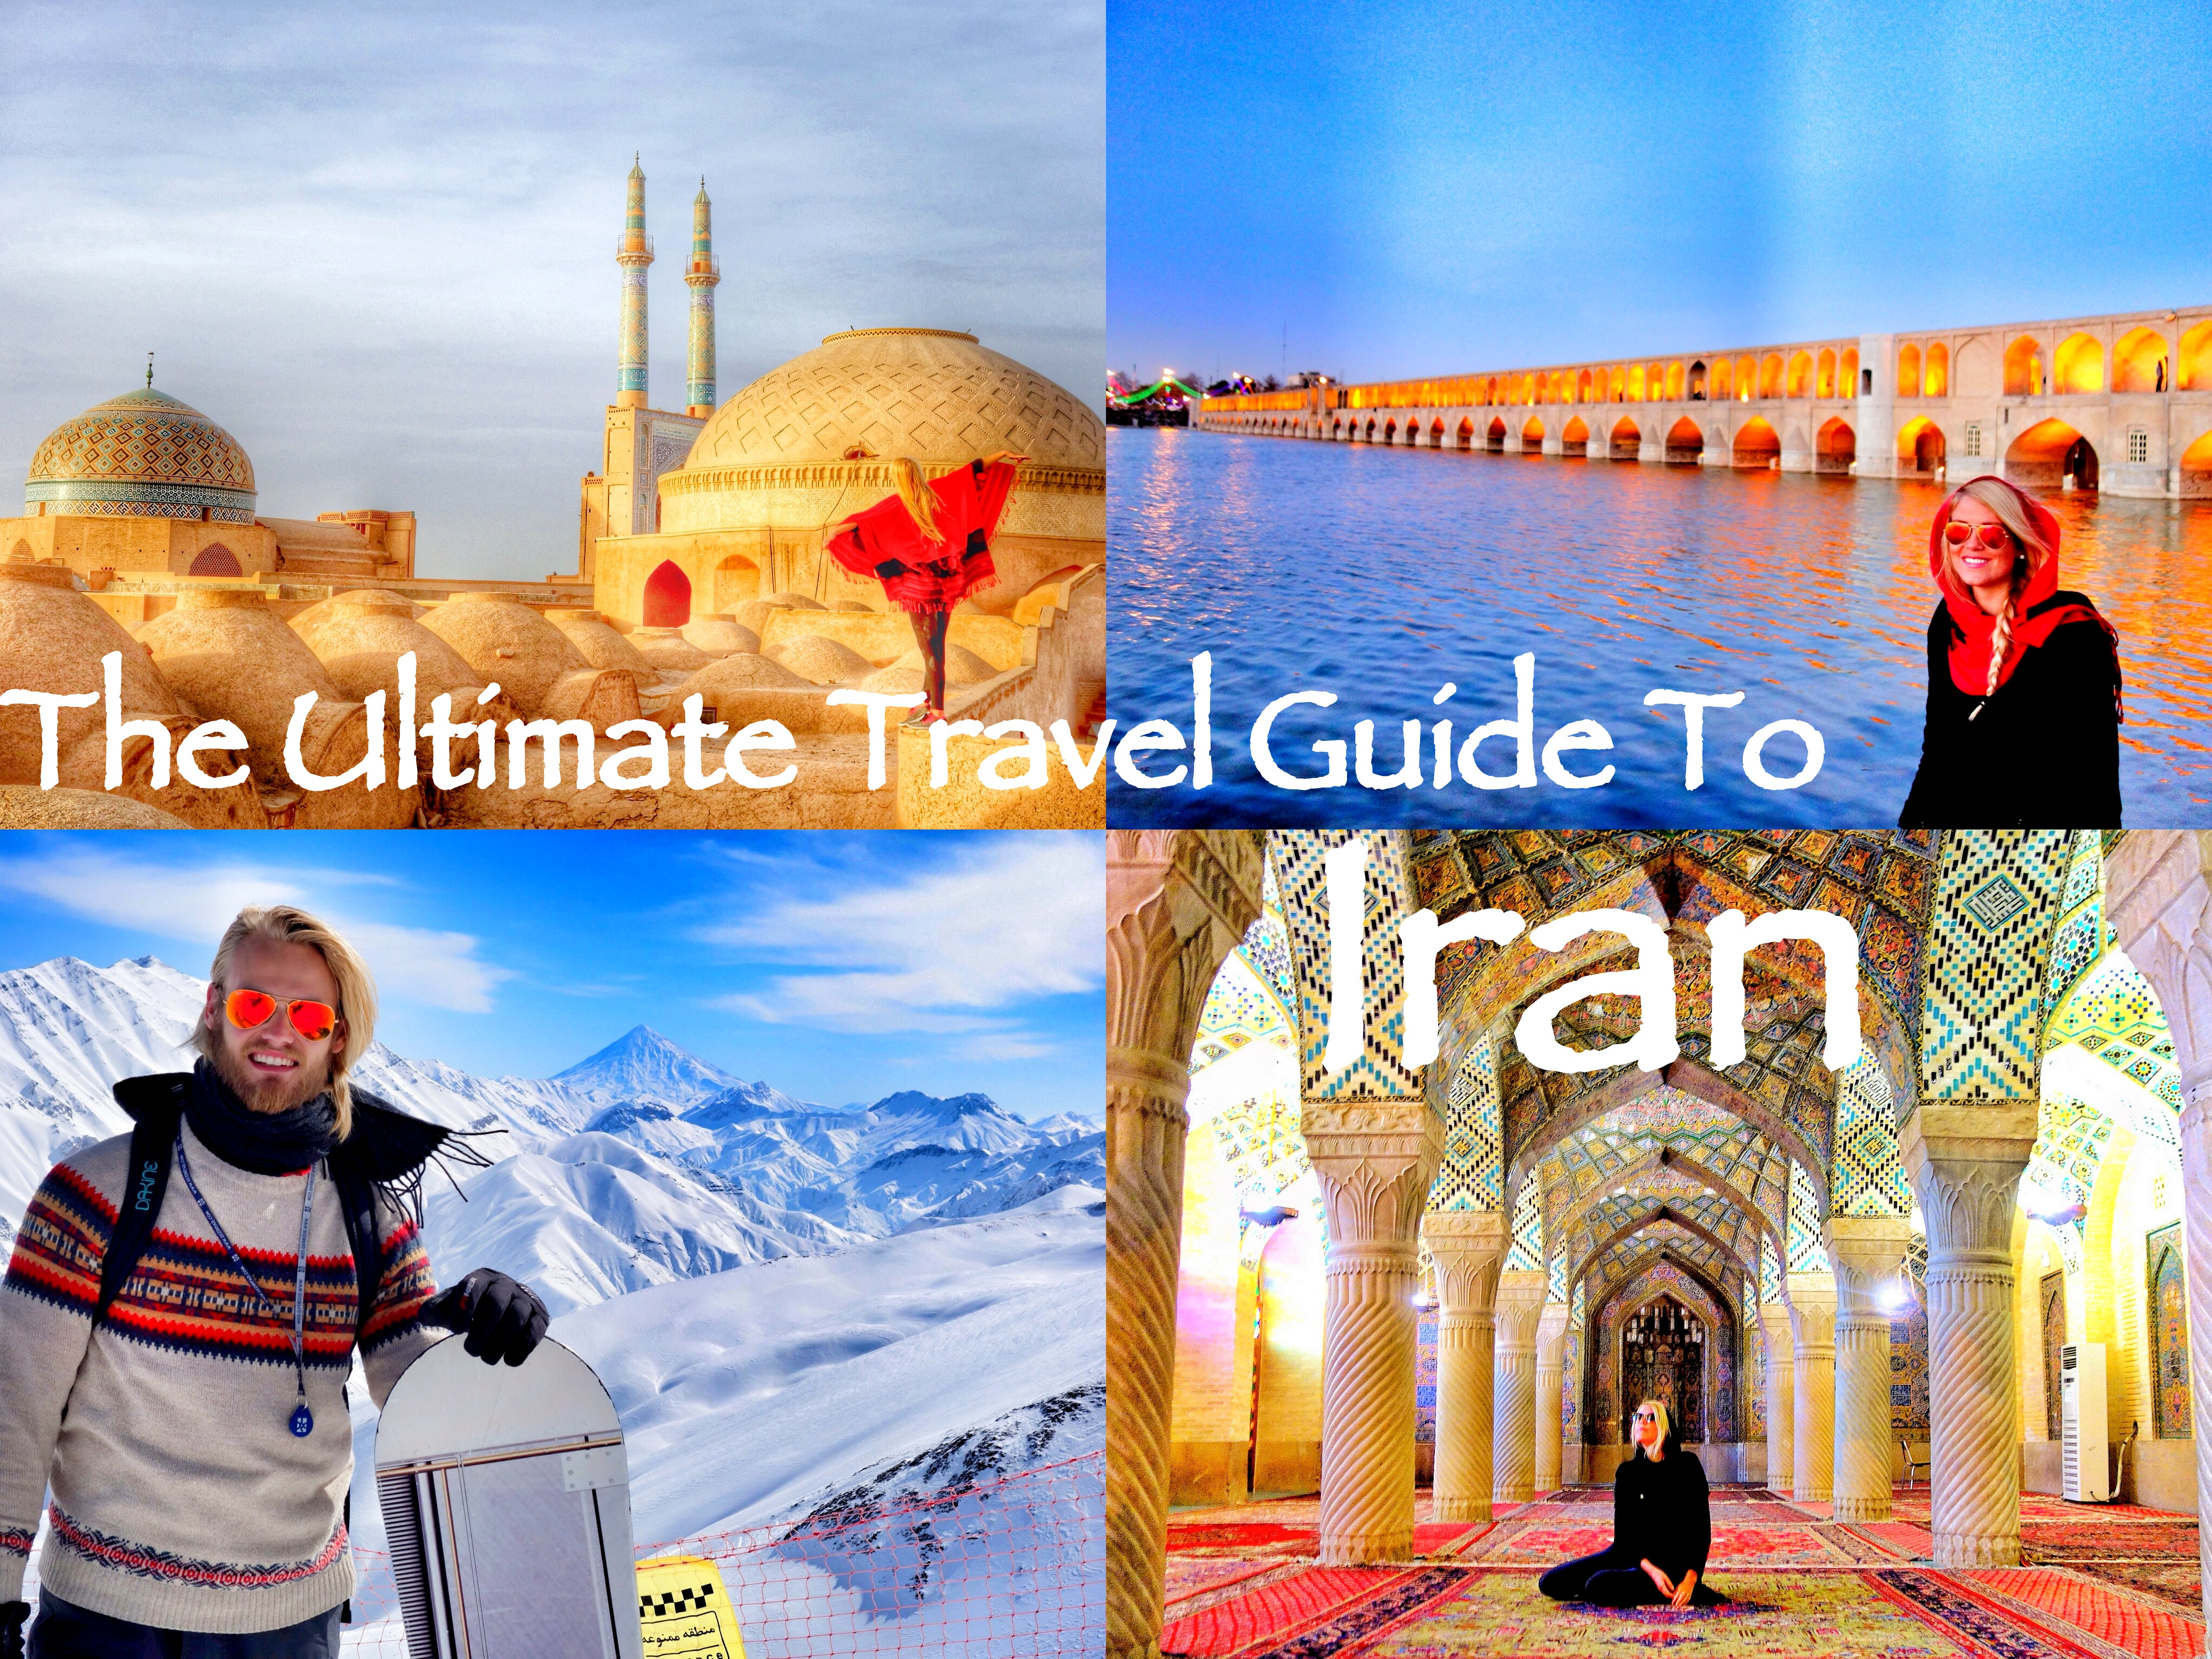 the ultimate travel guide to iran from ice to spice rh fromicetospice com Glencoe Algebra 1 2014 9.3 Study Guide